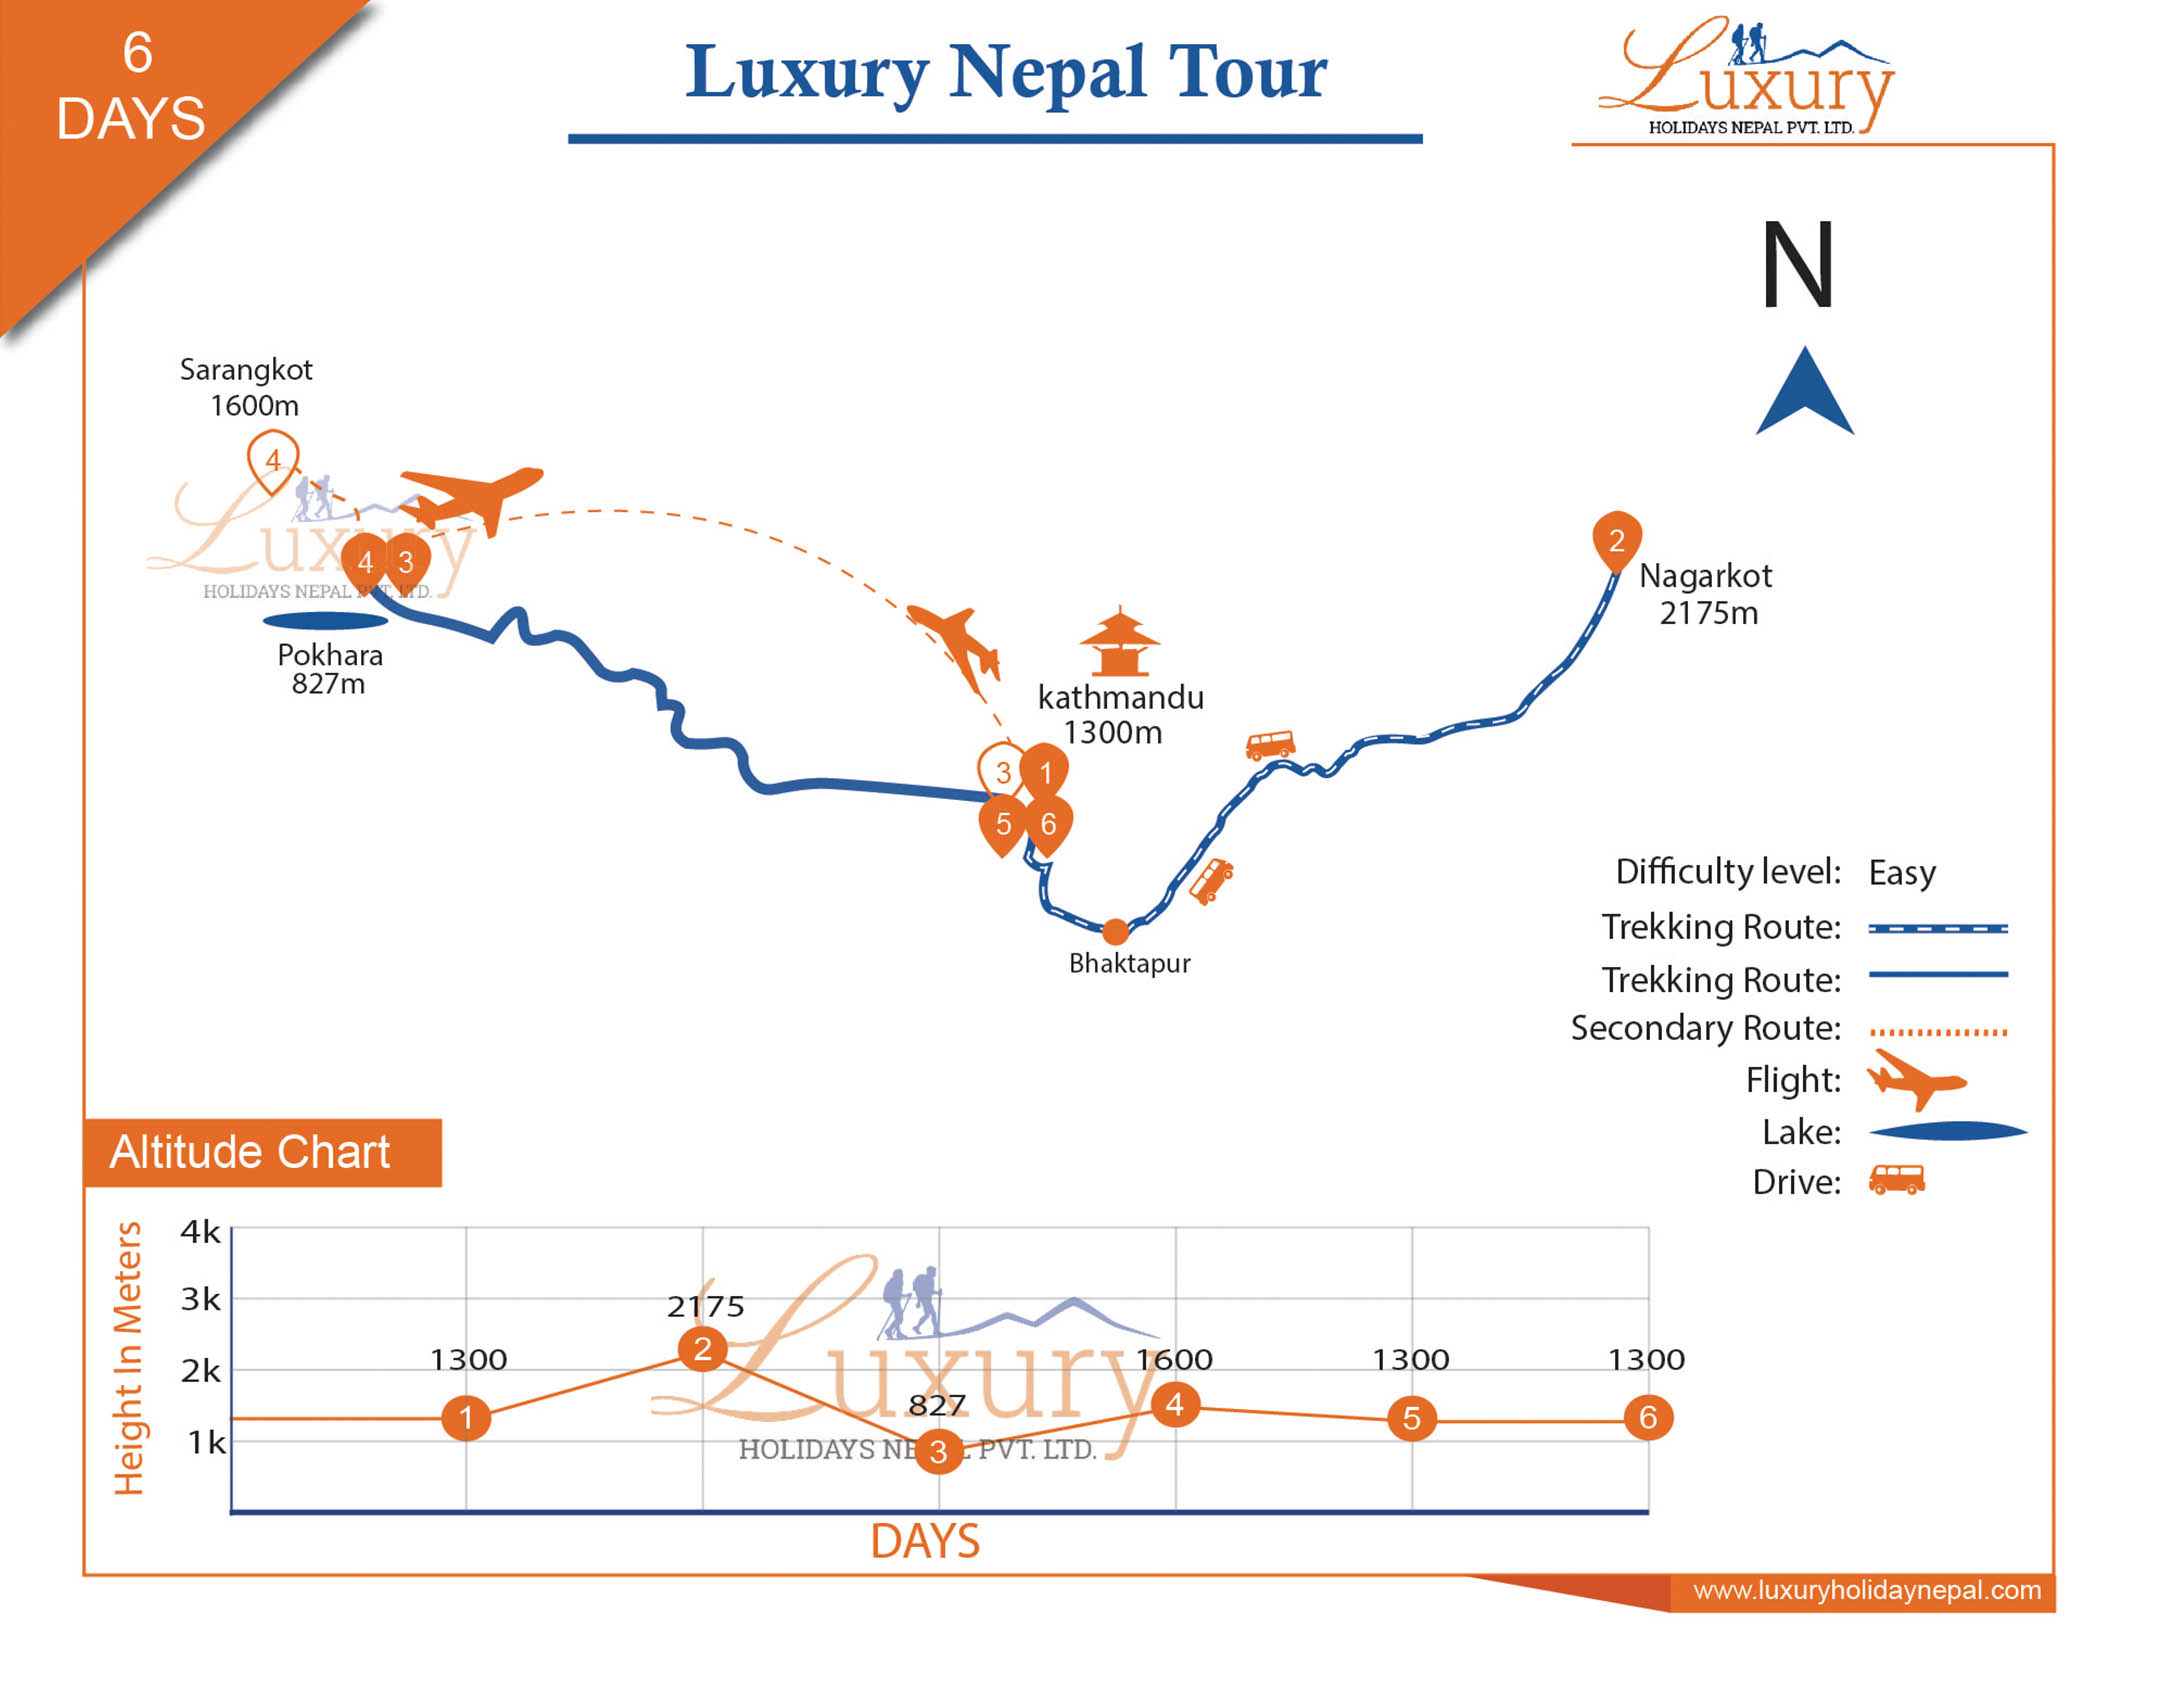 5 Nights 6 Days Luxury Nepal Tour with Everest Scenic flight Trip Map